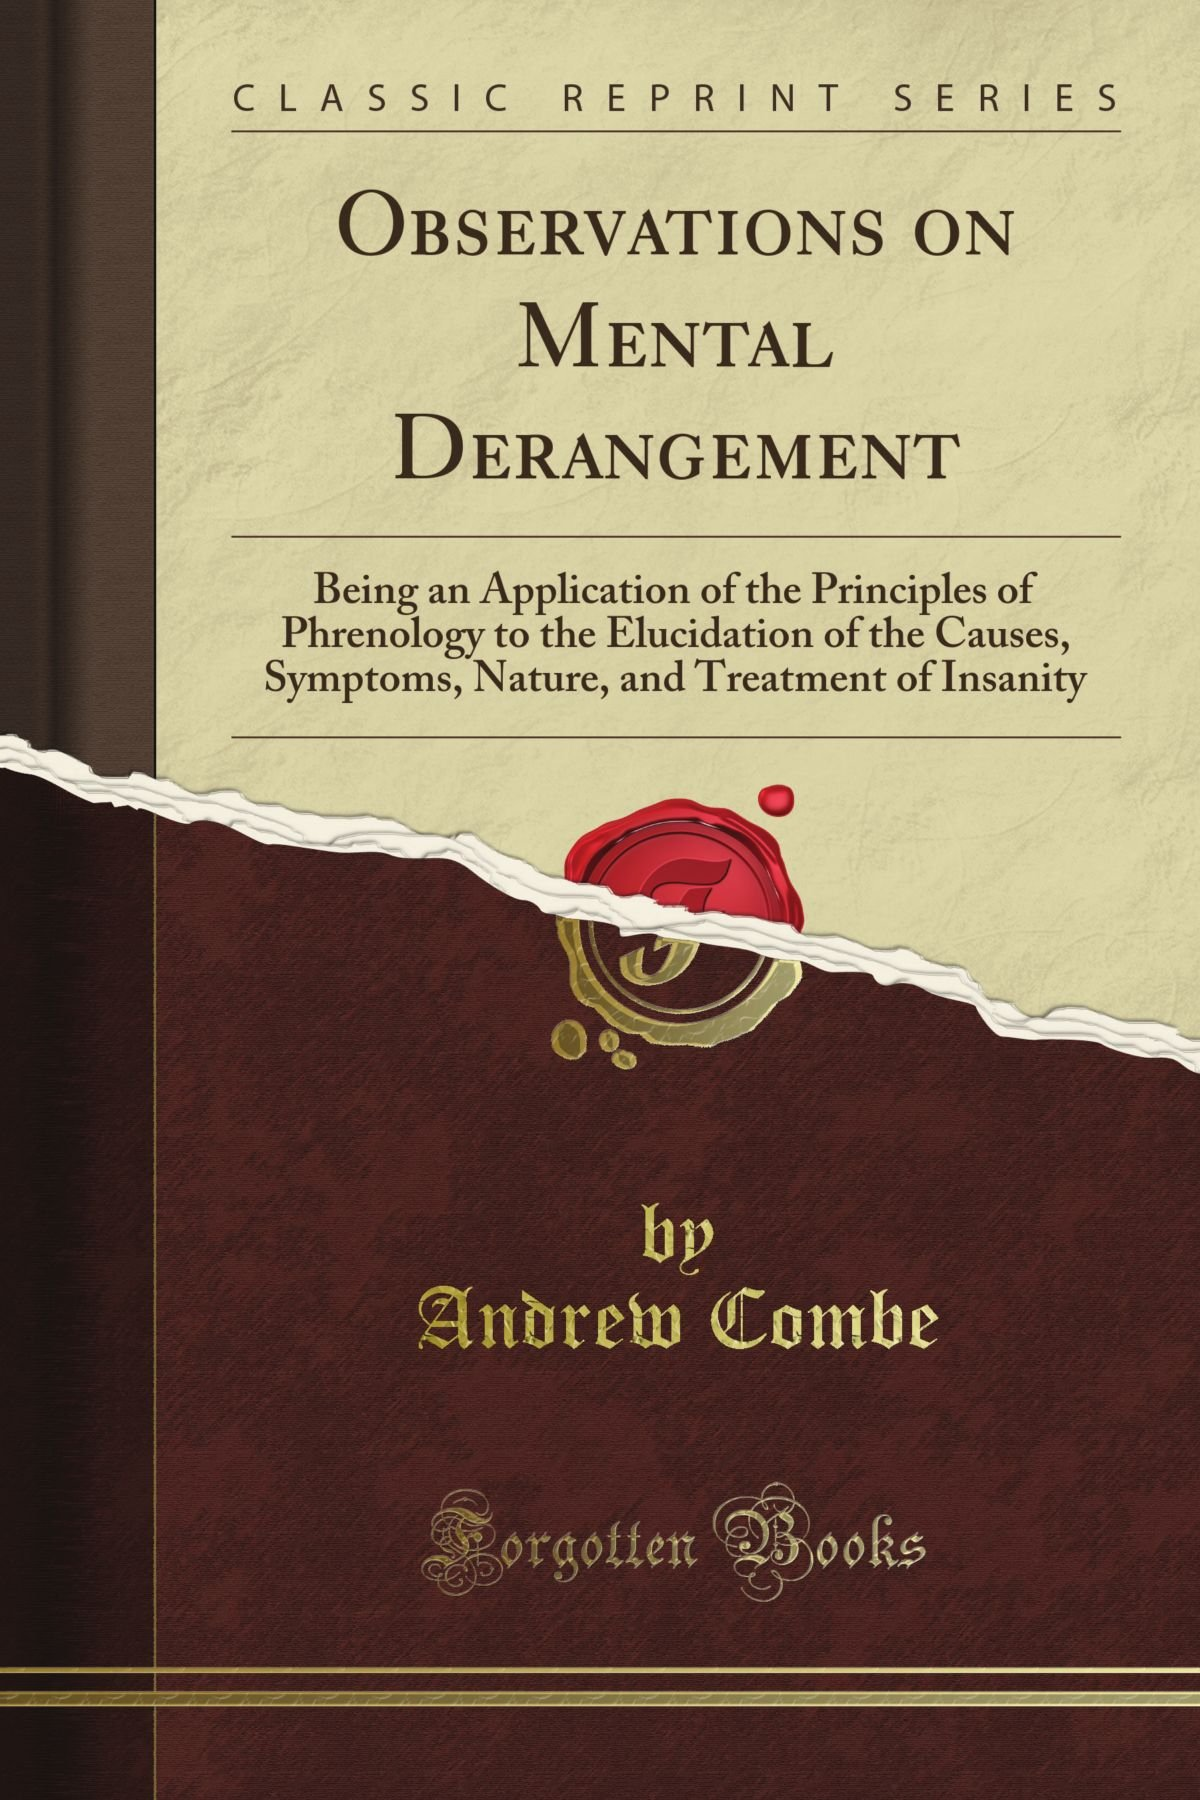 Download Observations on Mental Derangement: Being an Application of the Principles of Phrenology to the Elucidation of the Causes, Symptoms, Nature, and Treatment of Insanity (Classic Reprint) ebook